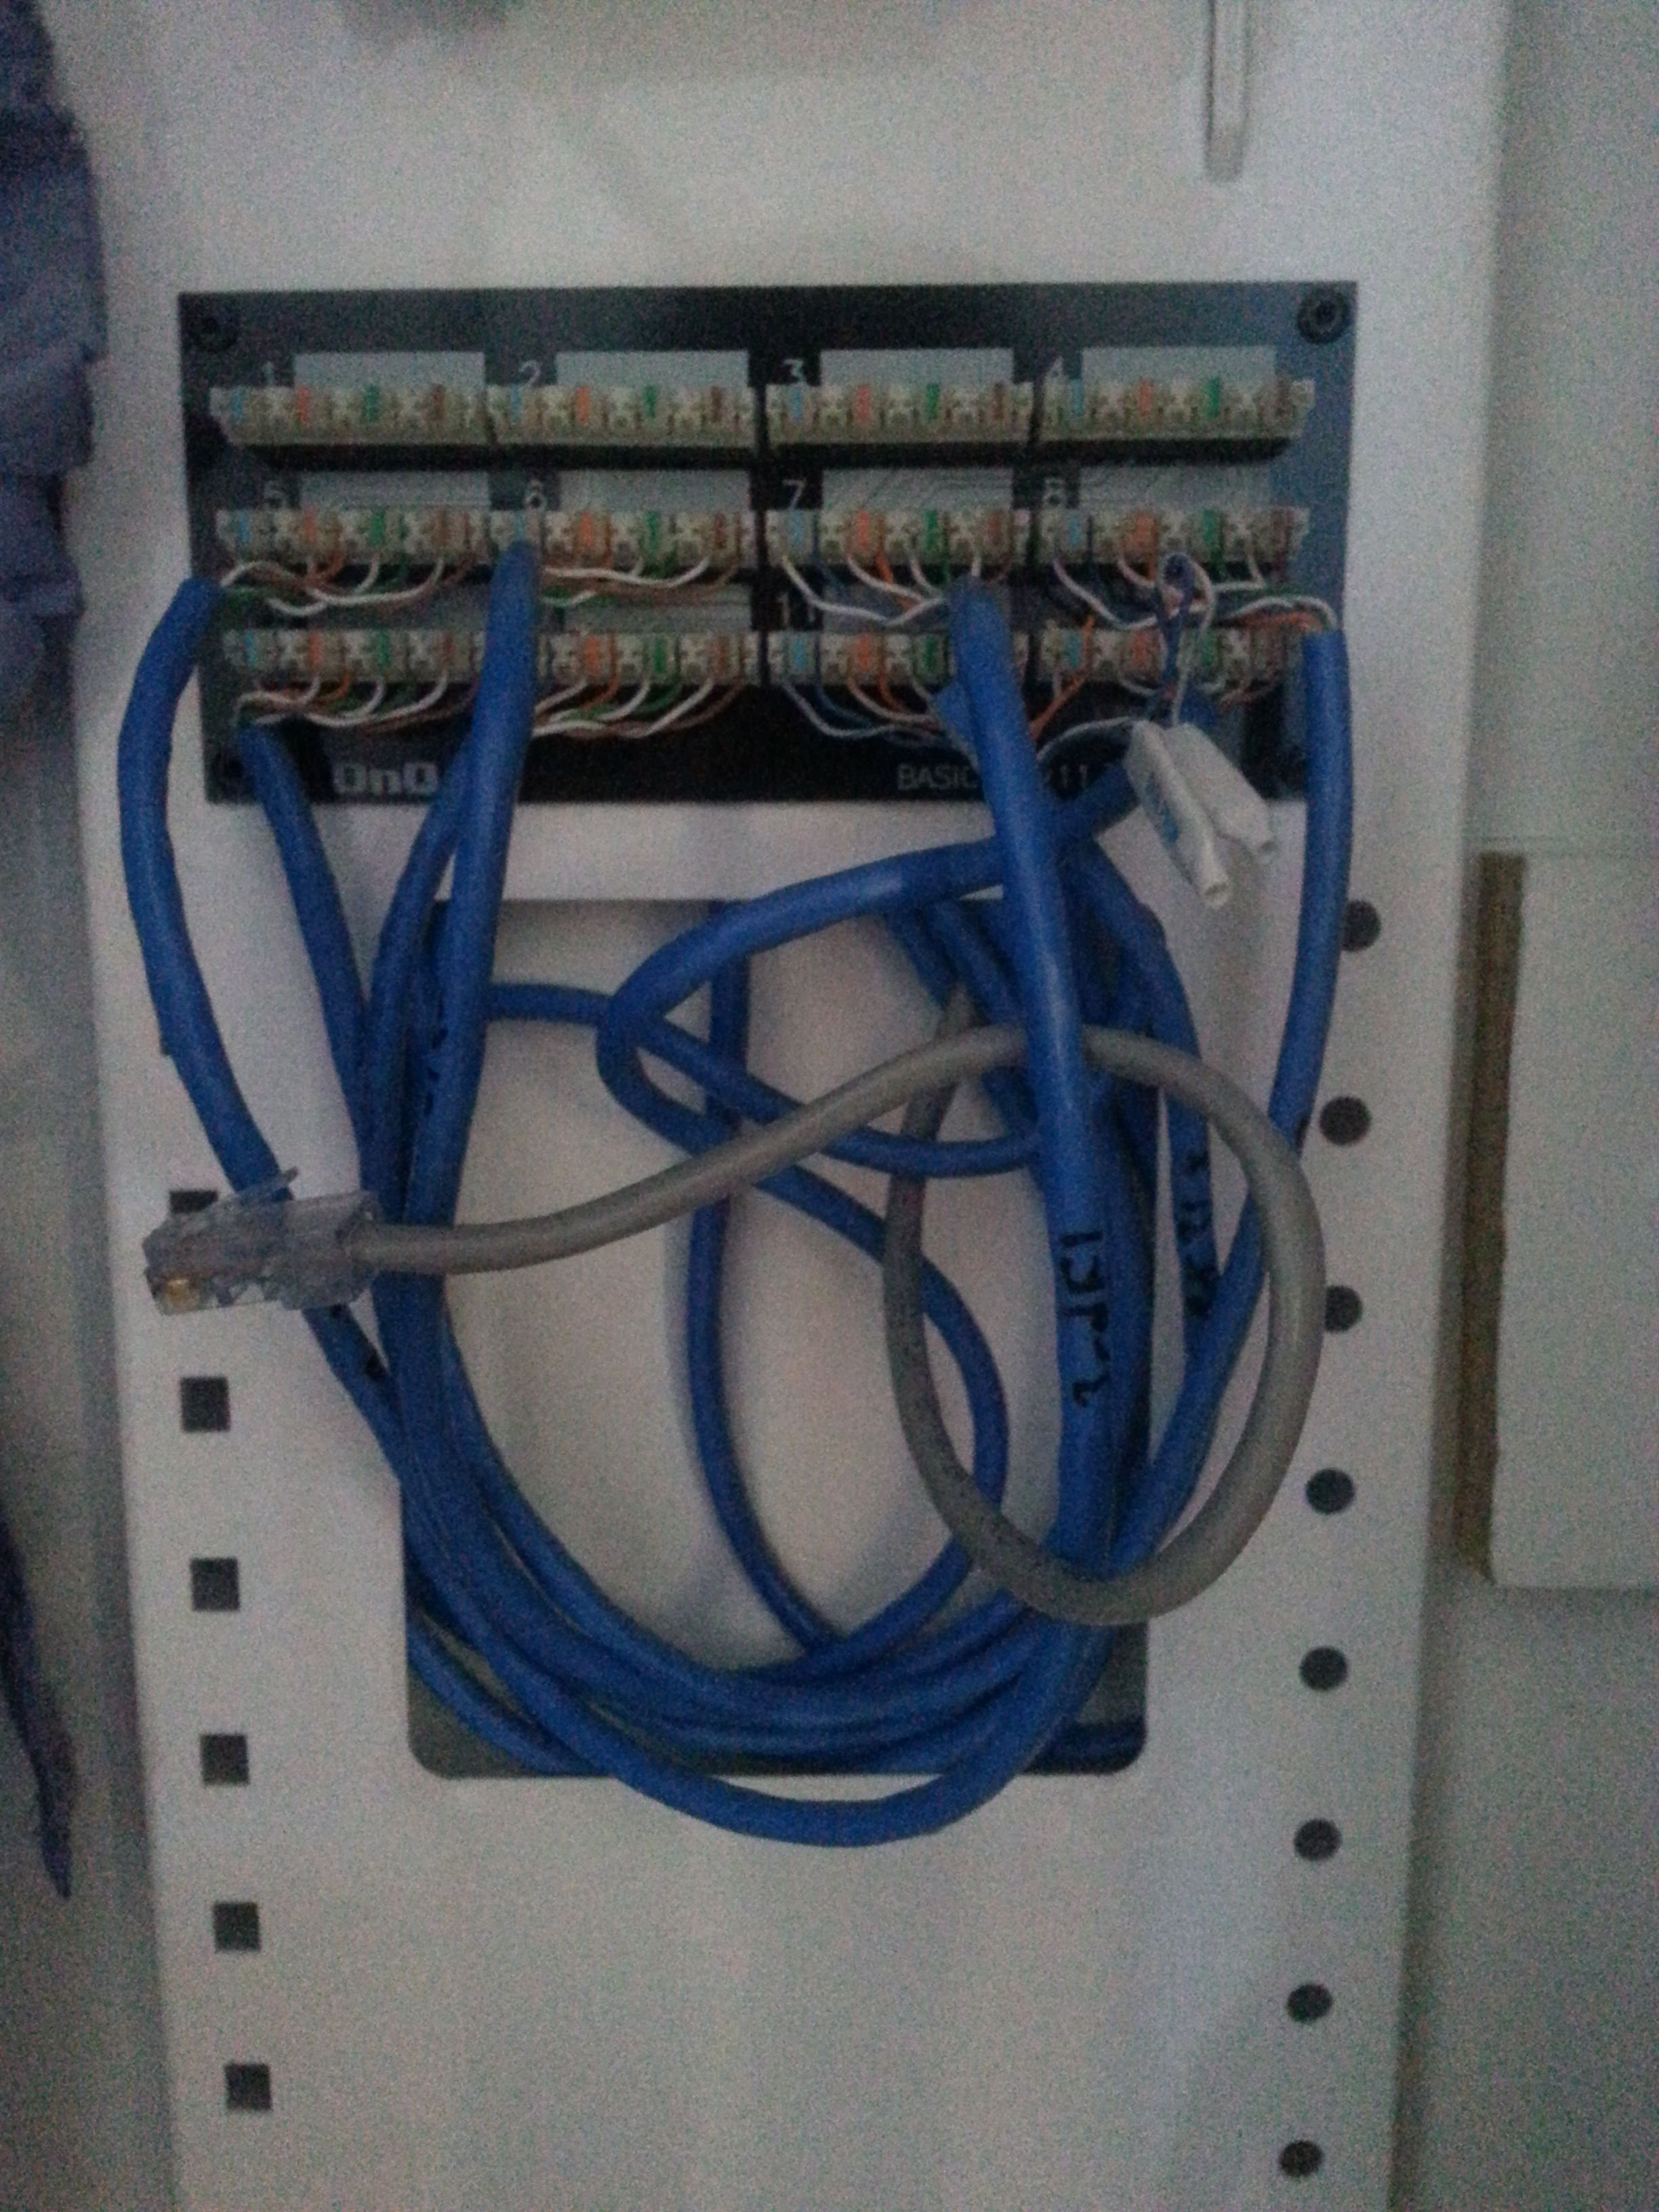 On Q Home System Totally Confused And Need Help Page 2 Avs Verizon Router Ethernet Wall Jack Wiring Here Is A Picture Of The It Says Its Basic 1 X 11 Telecom All Blue Wires Go To Each Jacks Rooms Also